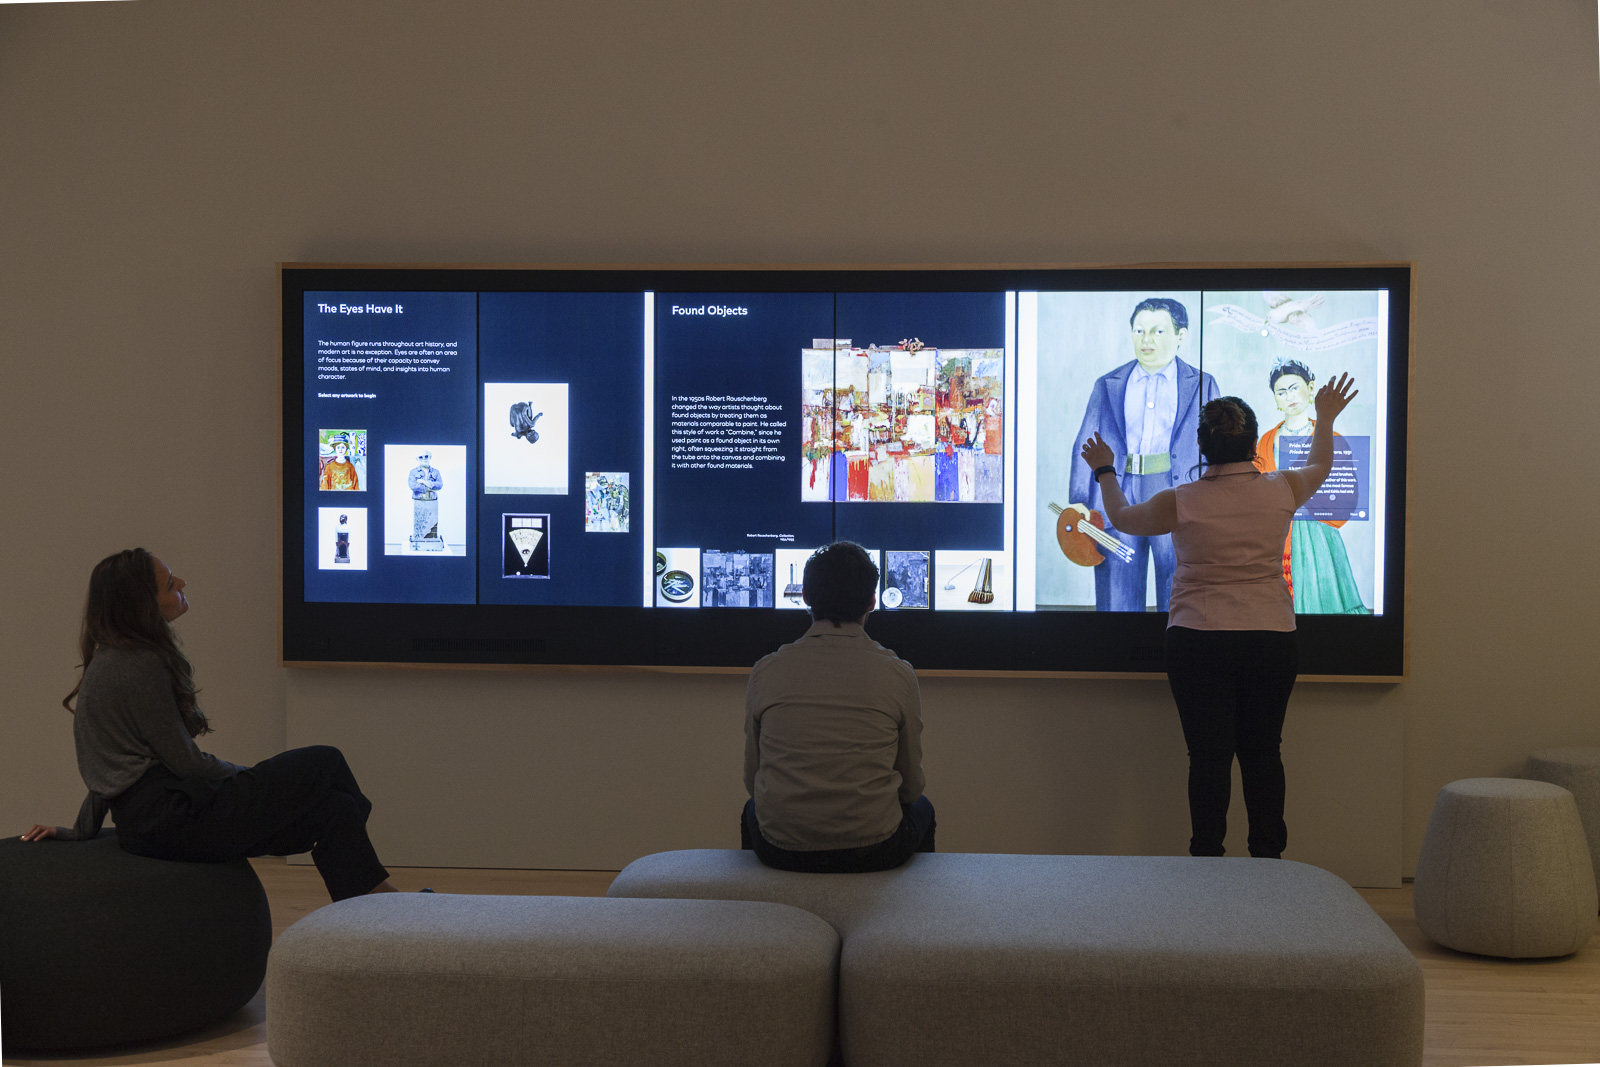 A photo inside SFMOMA's Painting an Sculpture Interpretive Gallery shows three visitors interacting with the Wall Experience. Two are seated on cushions while a third visitor uses both hands to interact with a large touch screen.